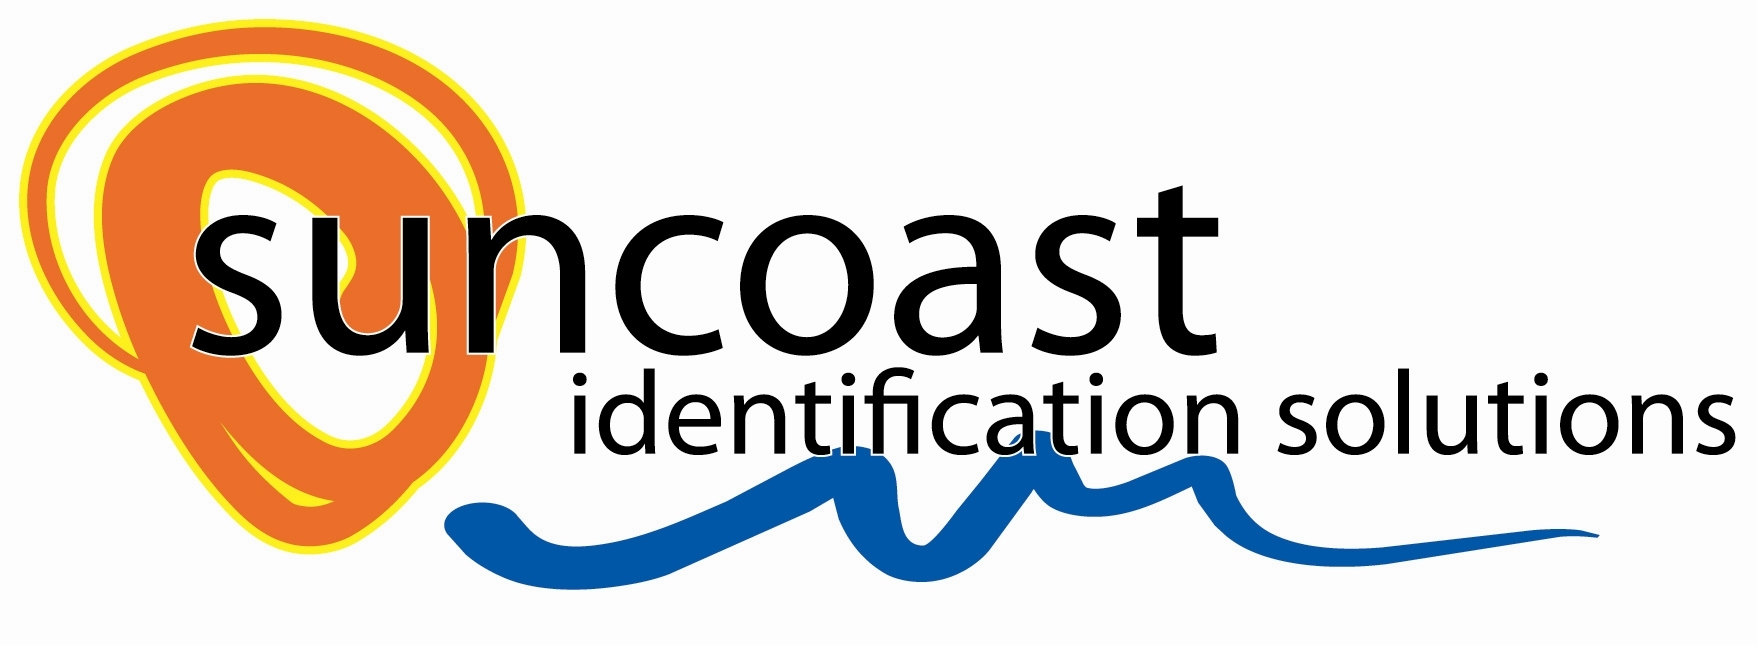 Suncoast Identification Solutions